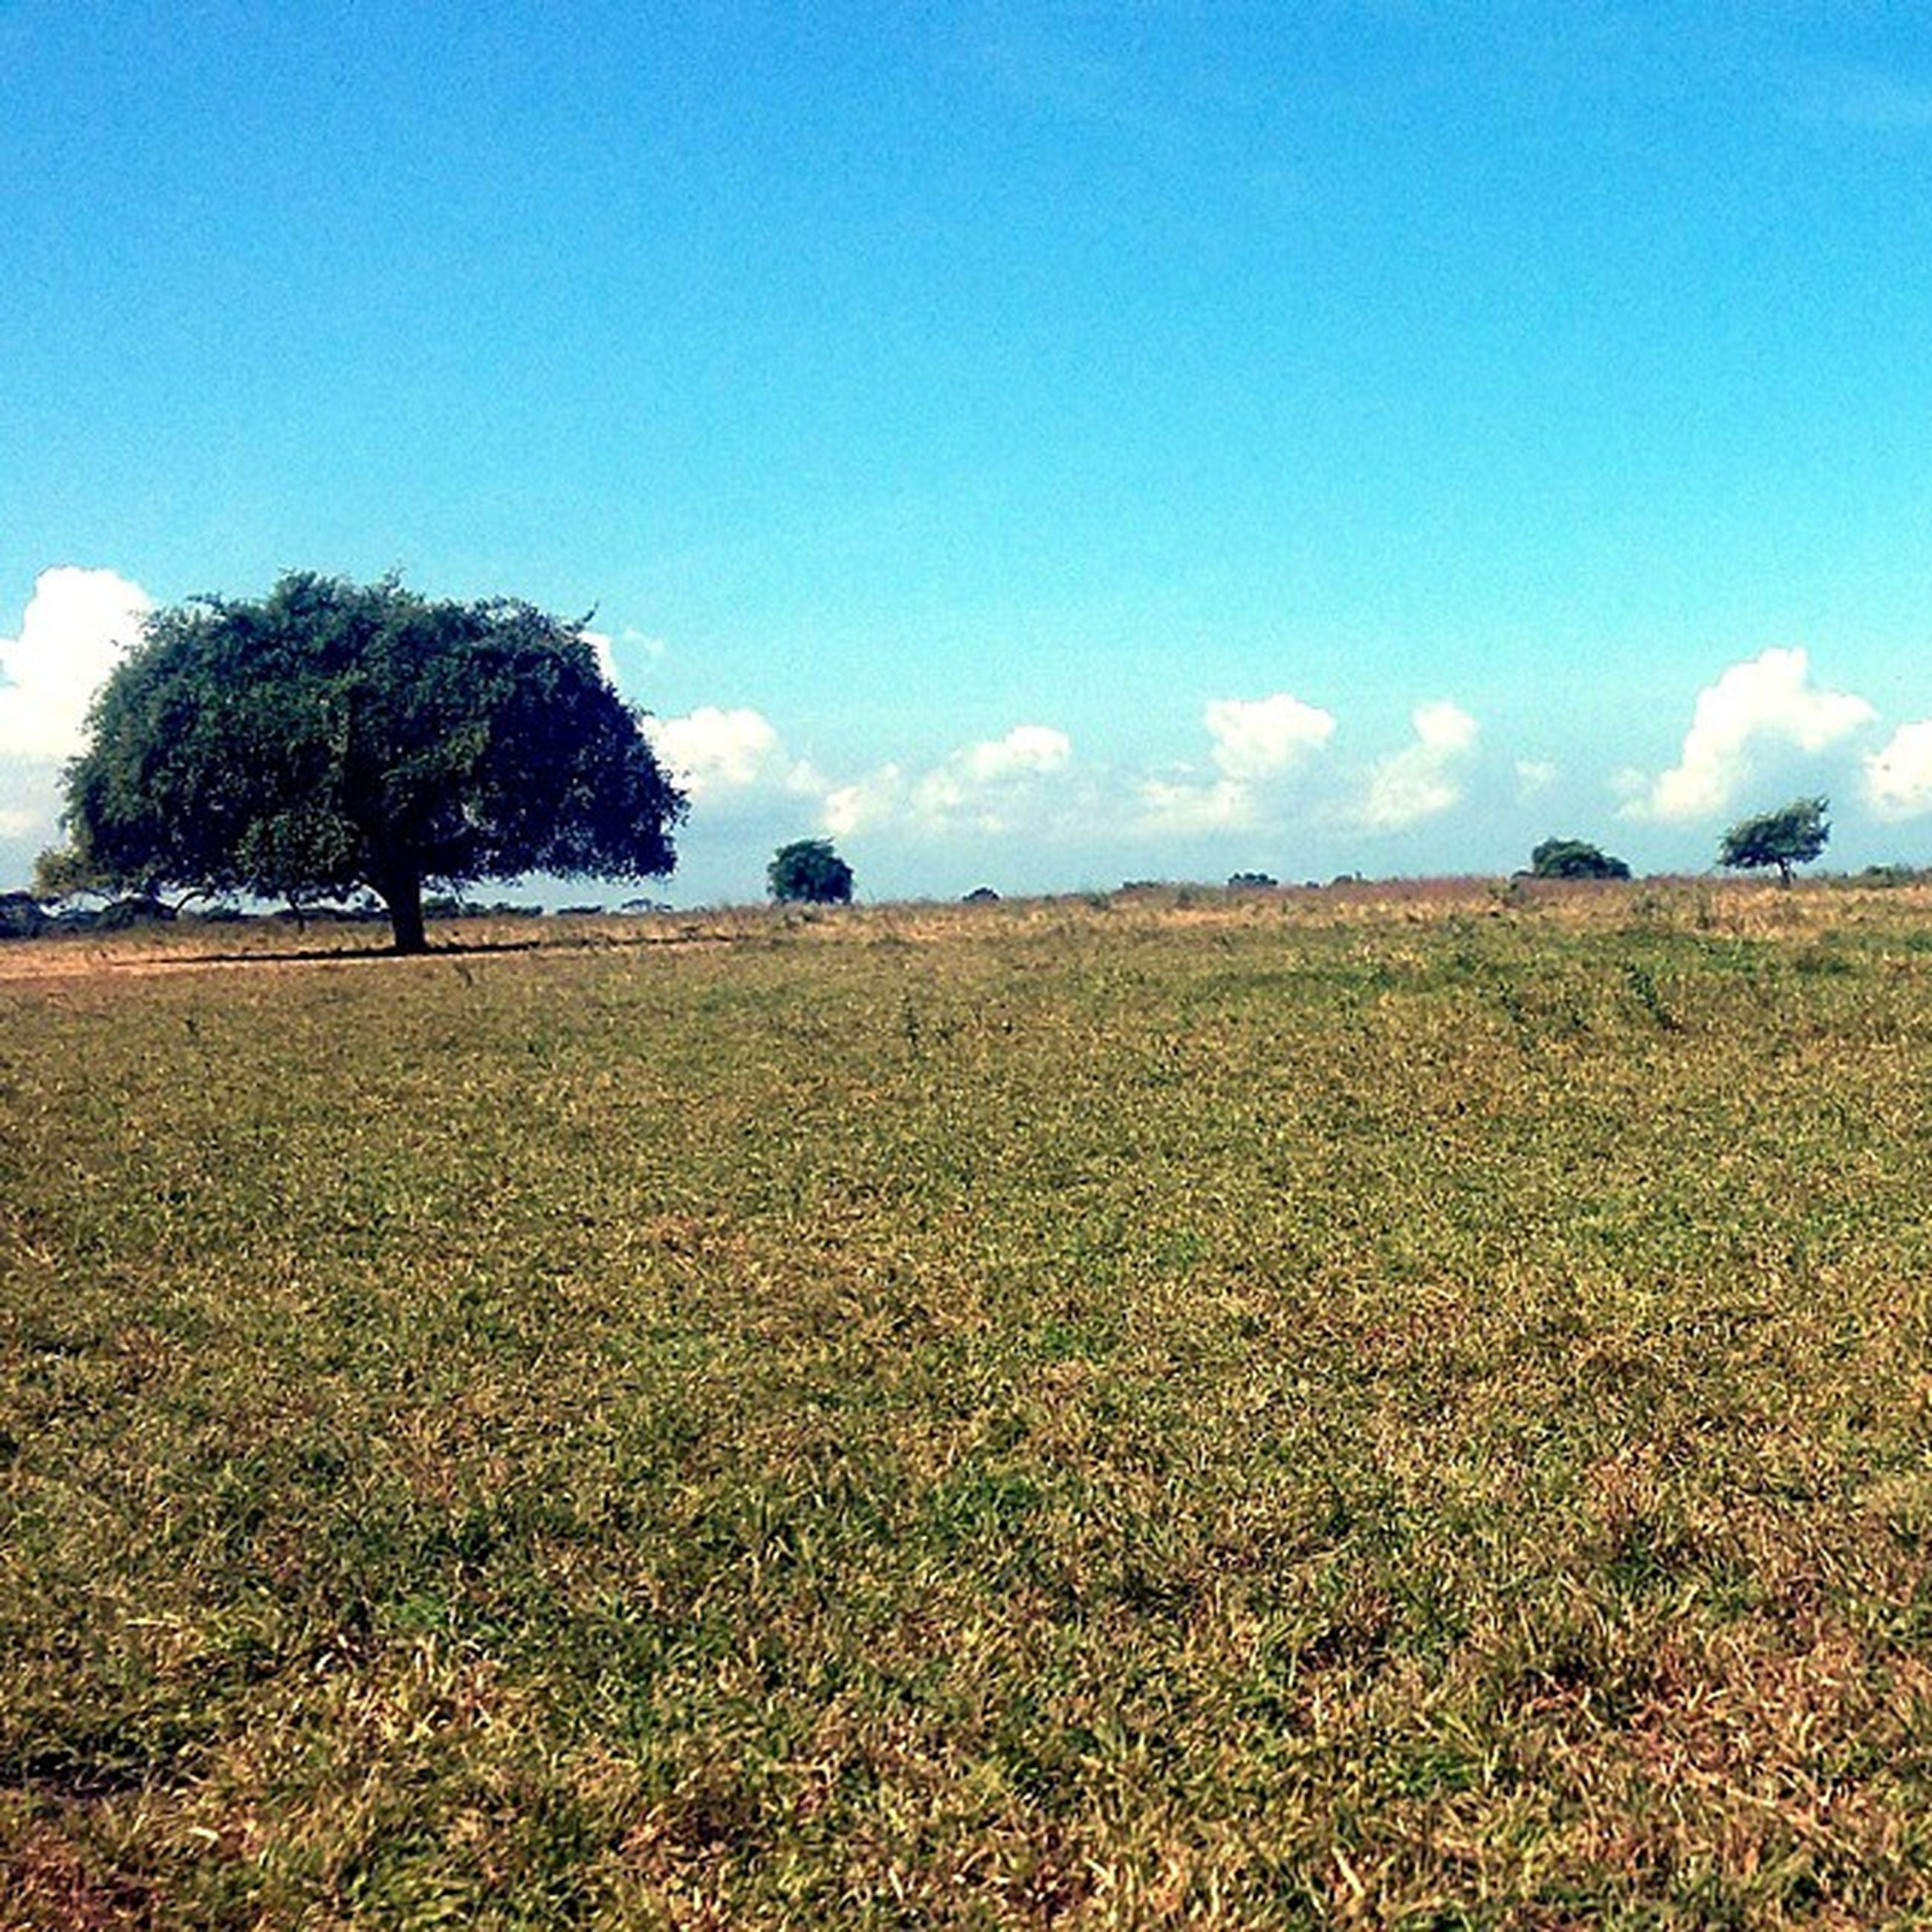 tree, landscape, field, blue, tranquil scene, tranquility, sky, scenics, beauty in nature, grass, nature, rural scene, clear sky, growth, copy space, grassy, agriculture, day, idyllic, outdoors